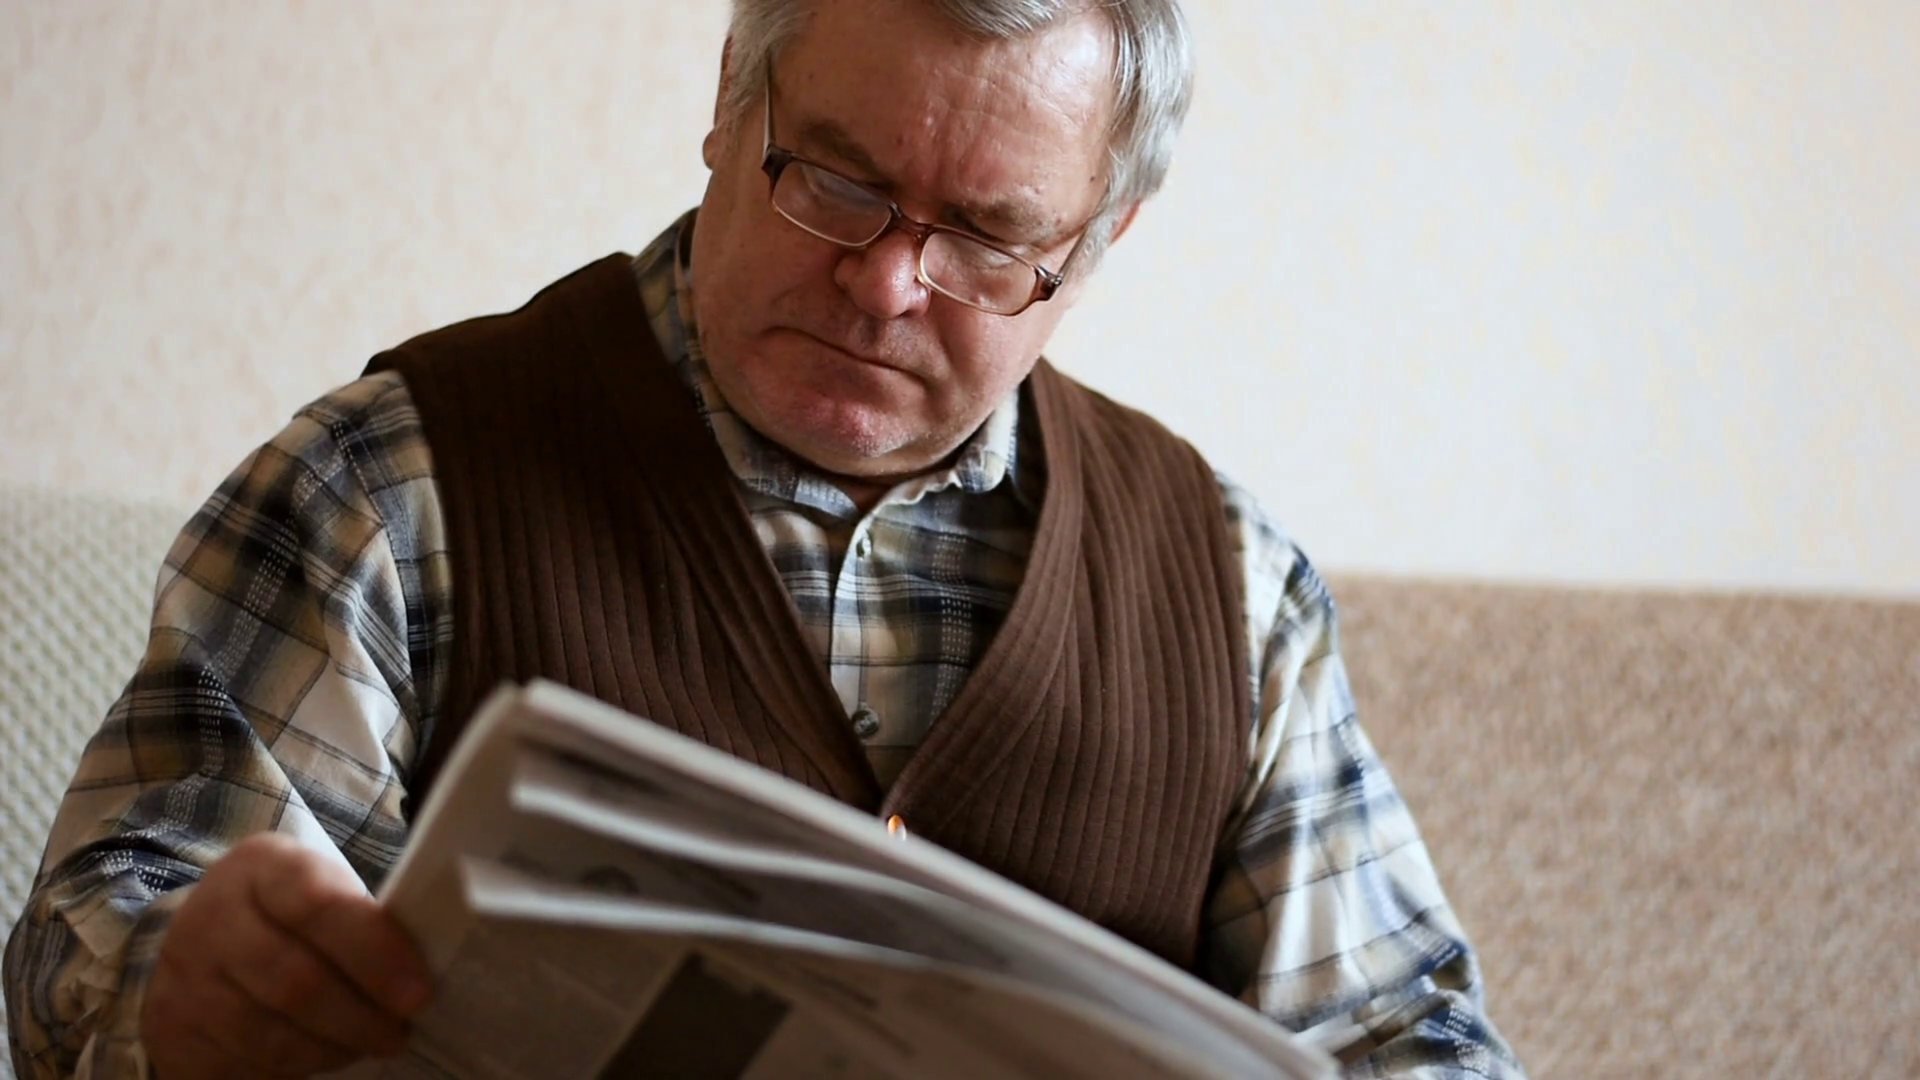 old-man-reading-the-newspaper-at-home_suhl5_ozll_thumbnail-full01.png